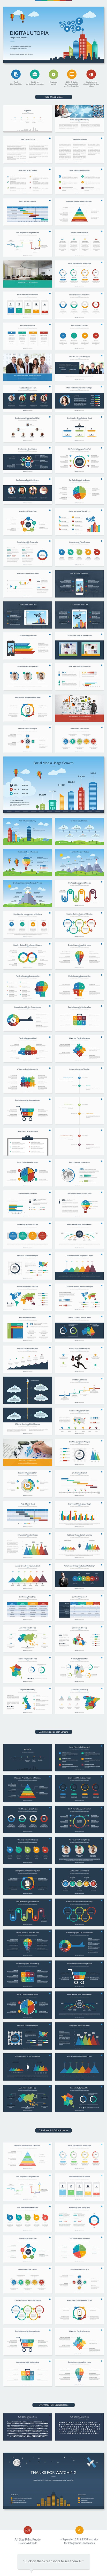 Digital Utopia Google Slides Template - Google Slides - Company Presentation - Projection - Inspirational Infographic Presentation - Maps - Slides - Slideshare - Clean - Creative PowerPoint